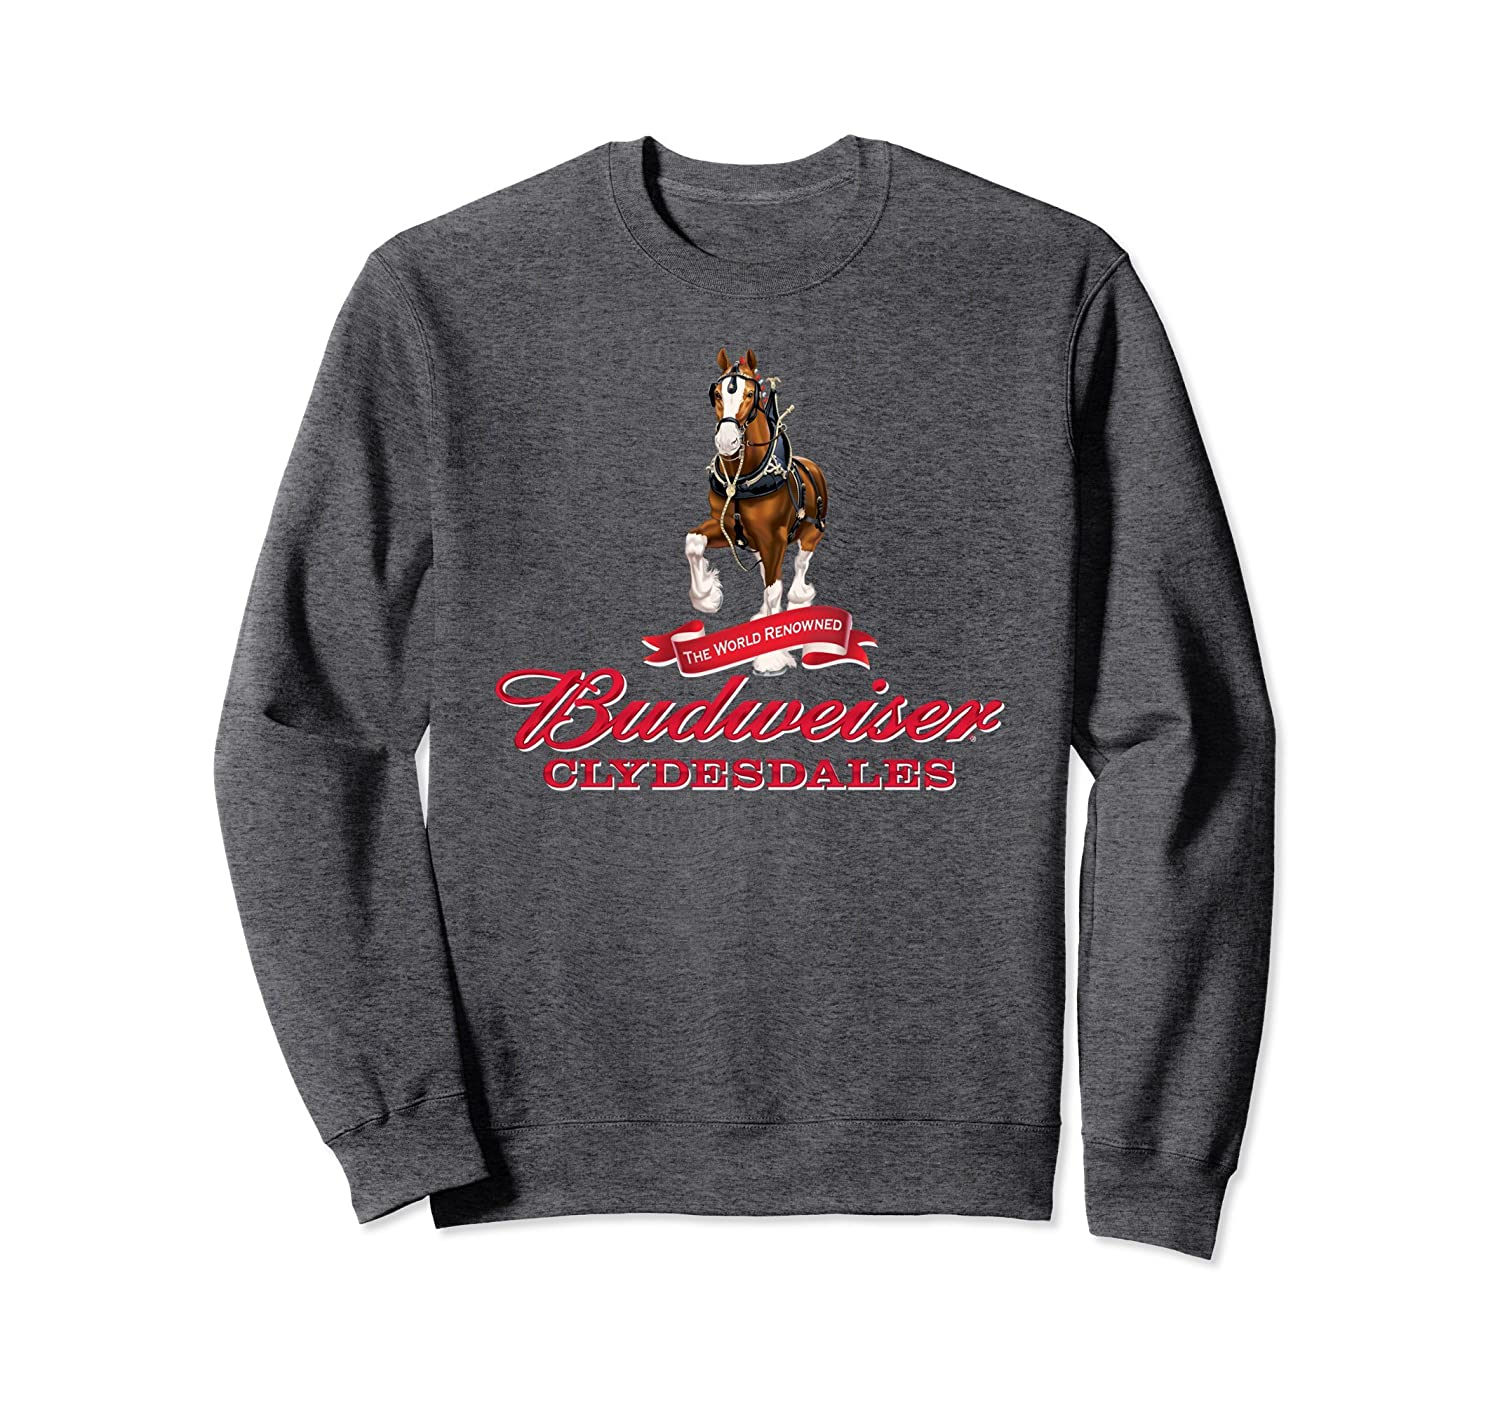 Budweiser 'The World Renowned Clydesdales' Sweatshirt-Teehay